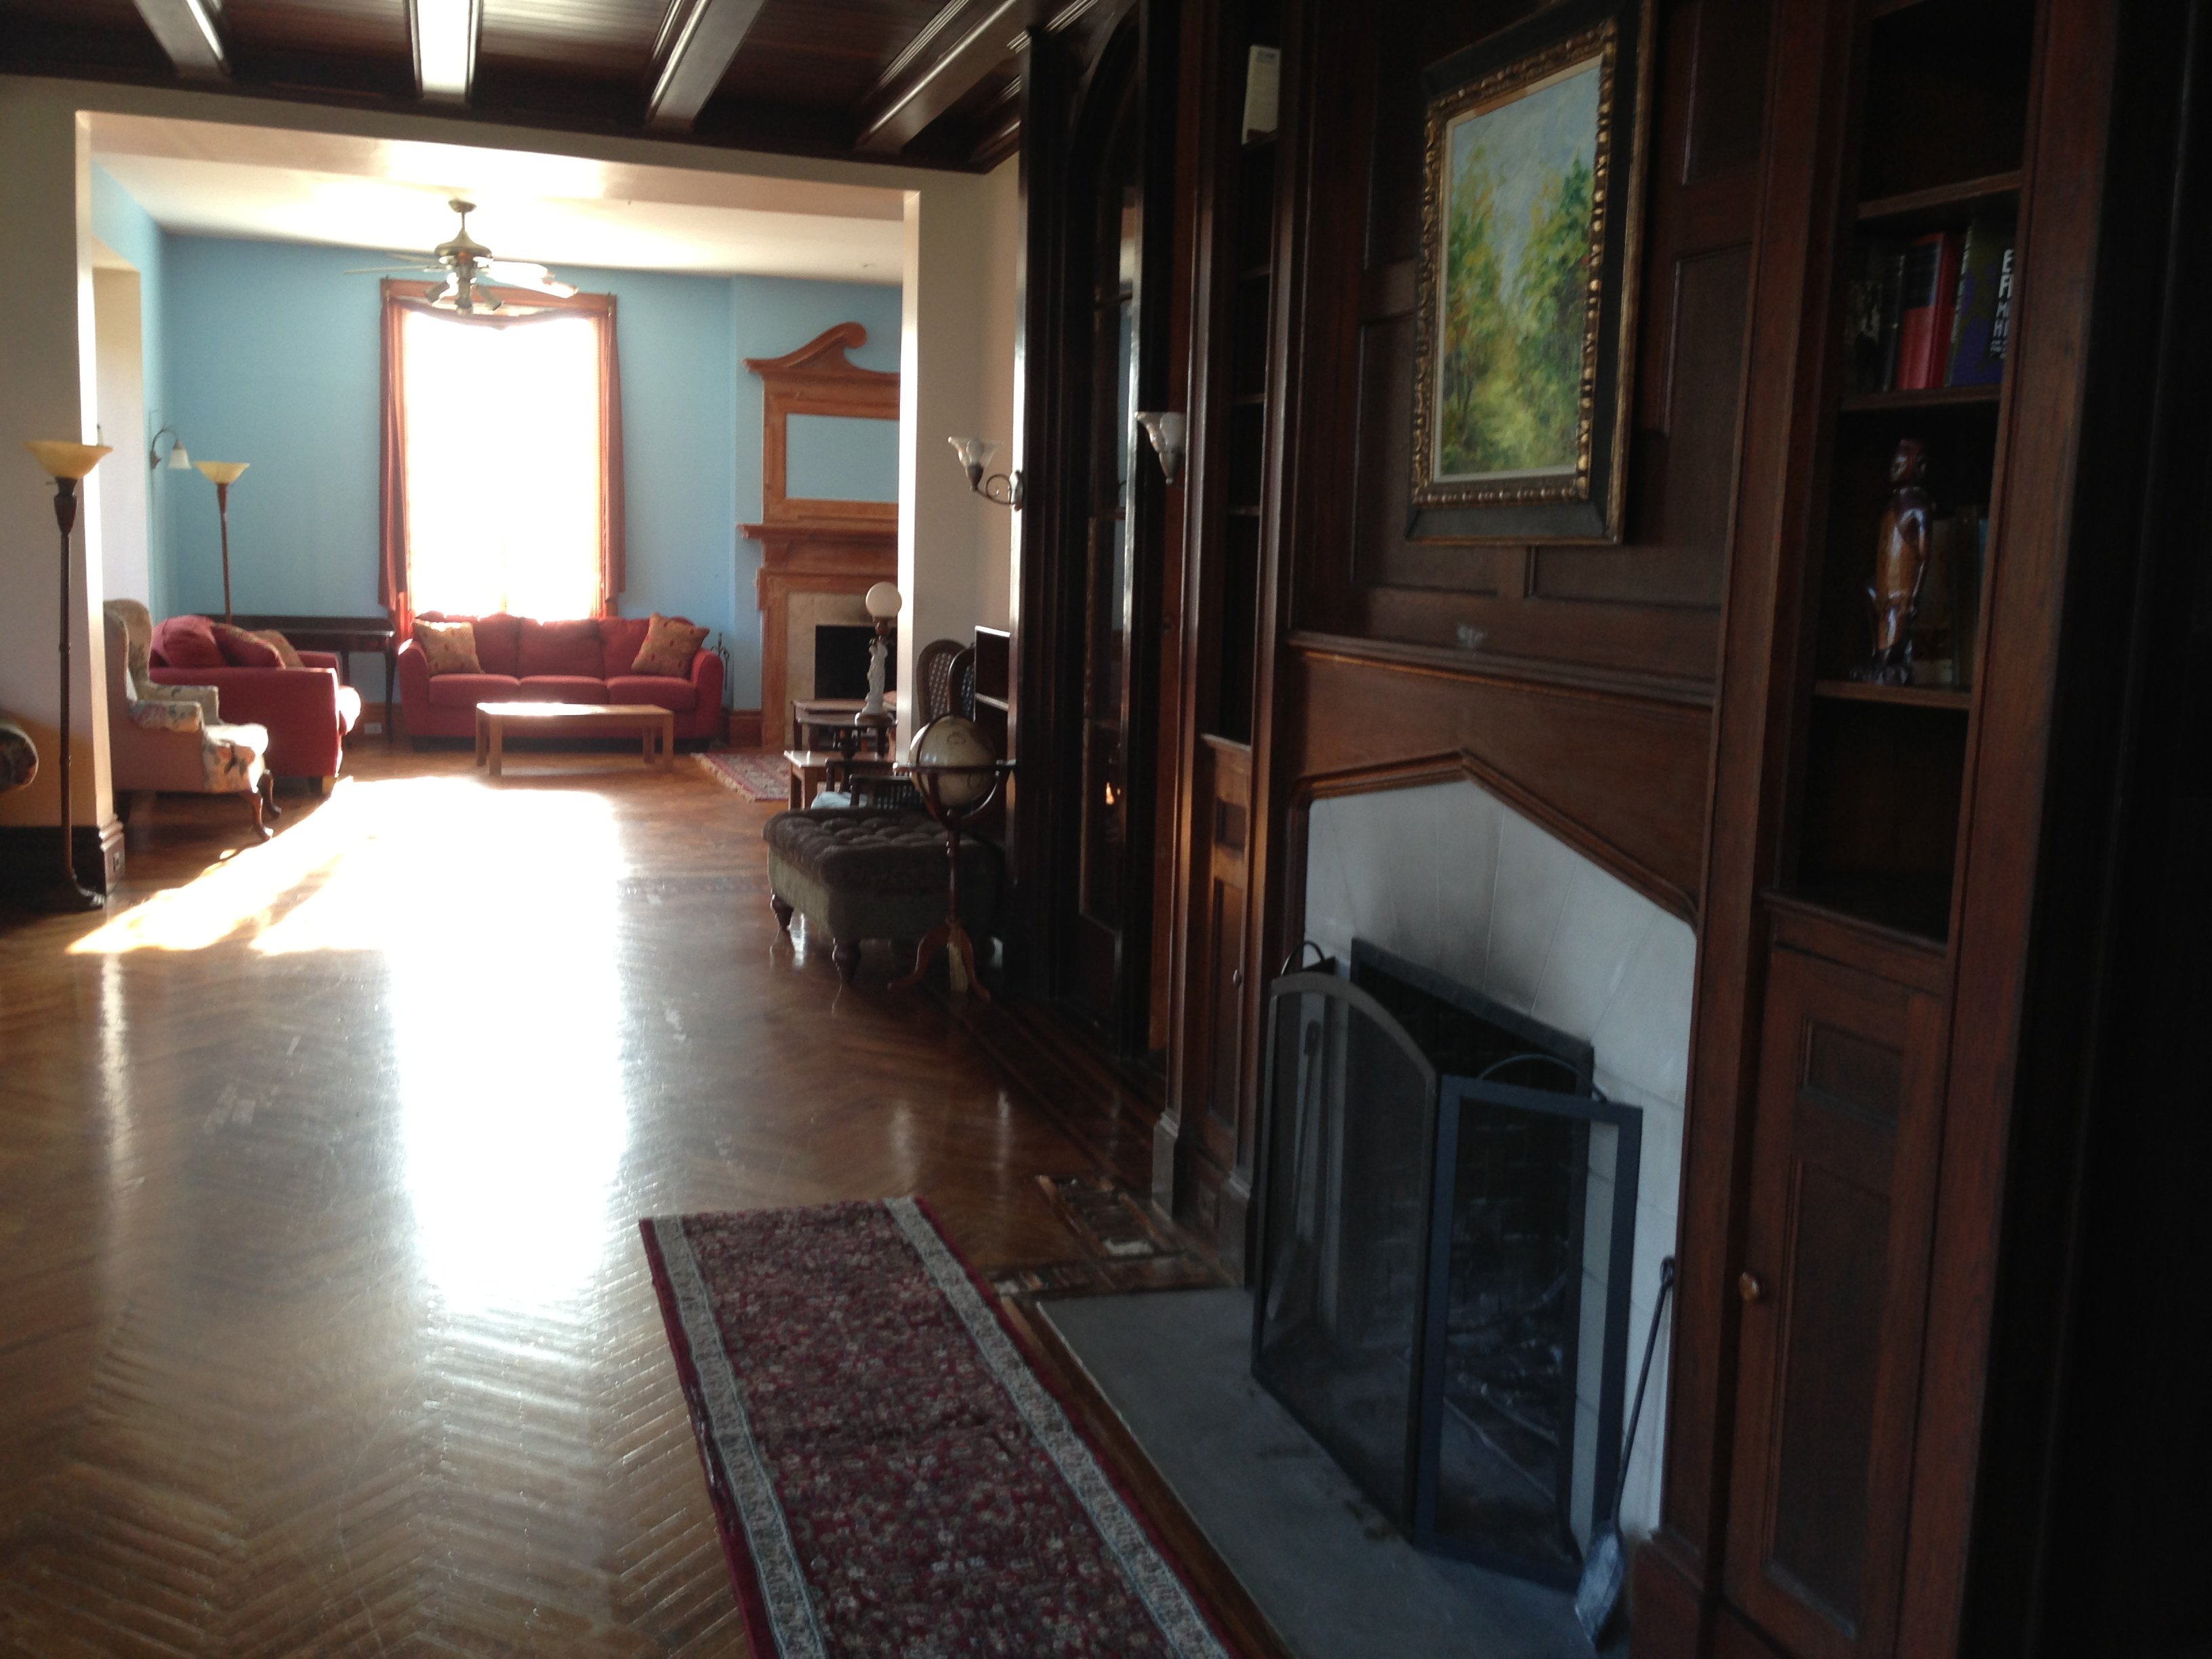 Gothic Revival Interior Design 19th-century gothic revival house for sale in new york